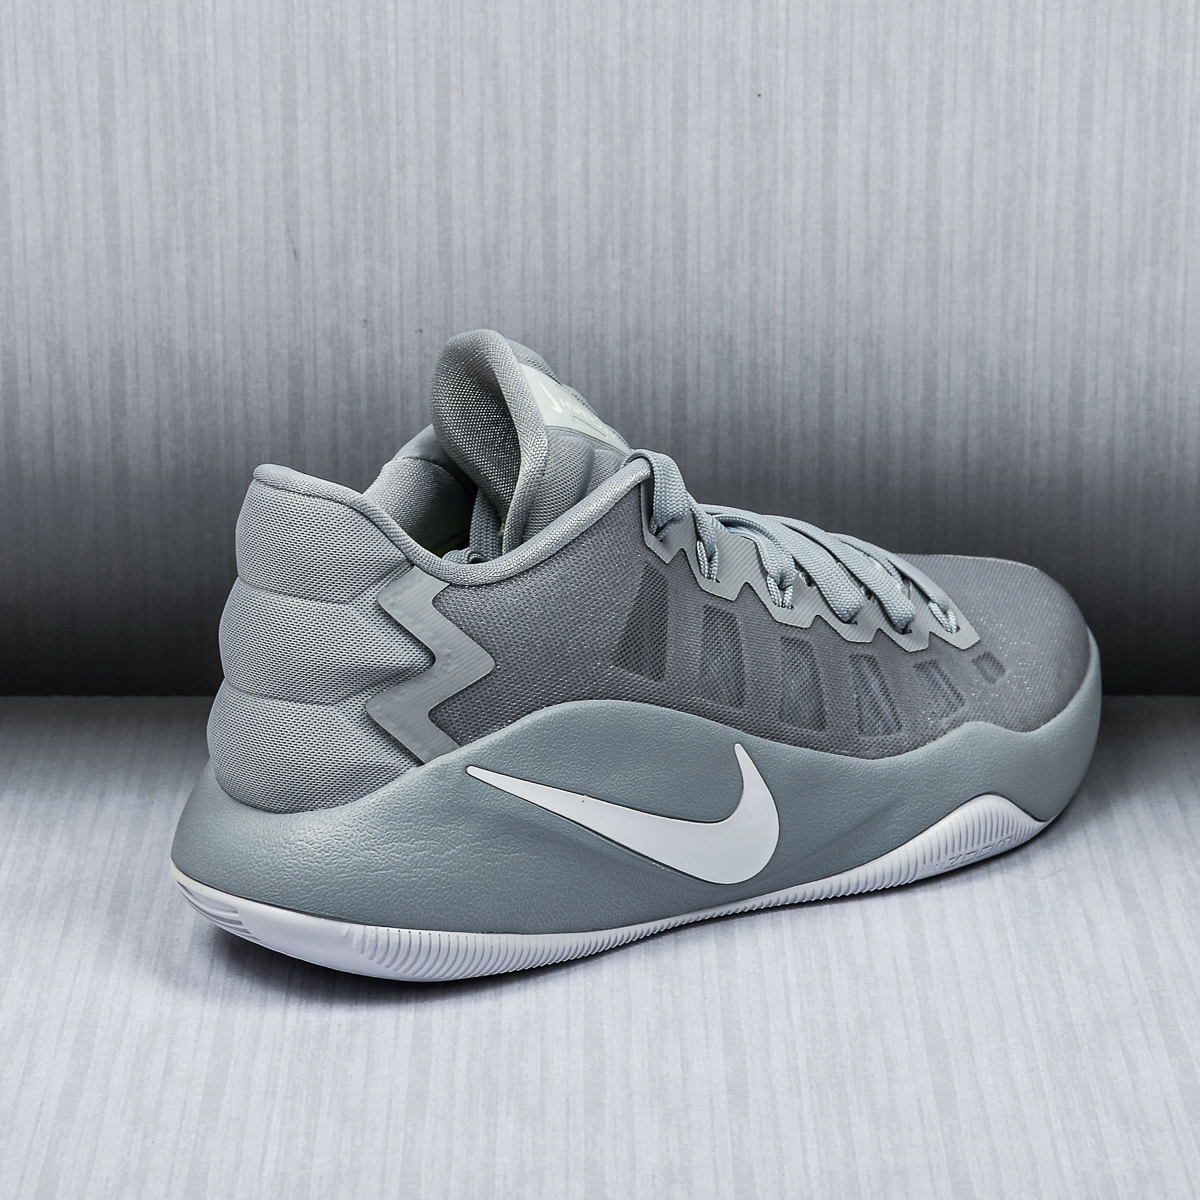 Nike Hyperdunk 2016 Low Basketball Shoes - BASKETBALL ...